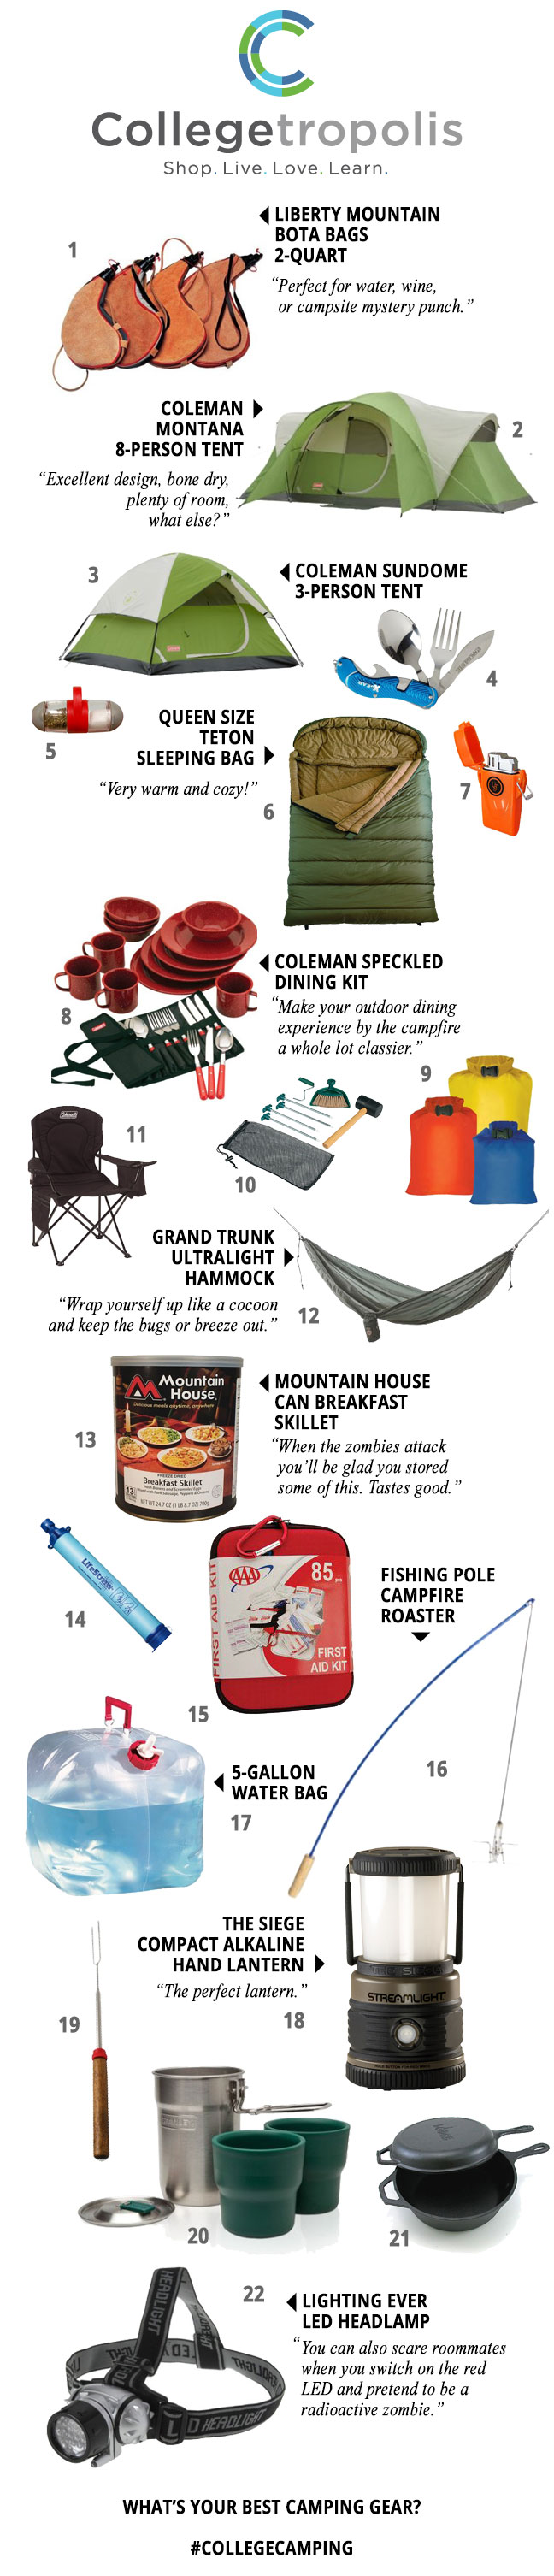 Must-Haves for Weekend Camping